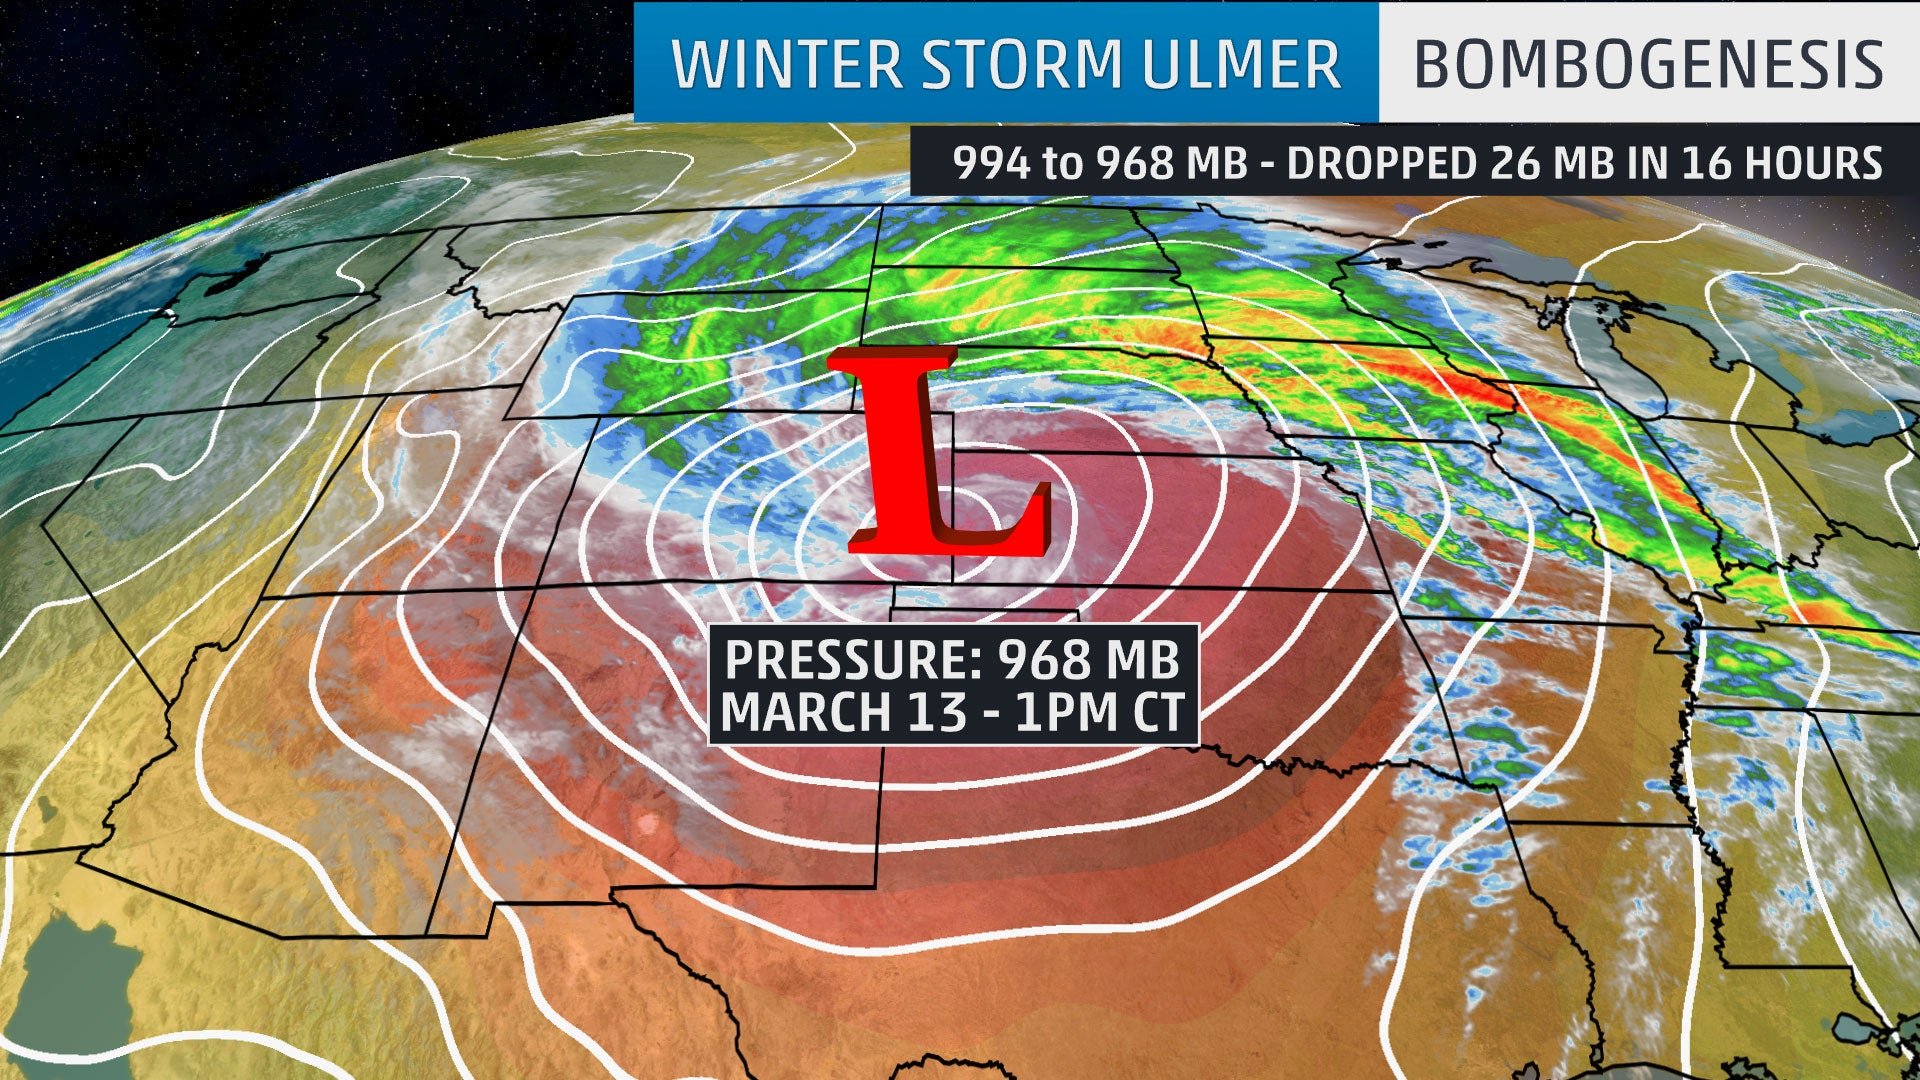 4 Jaw-Dropping Facts About Winter Storm Ulmer